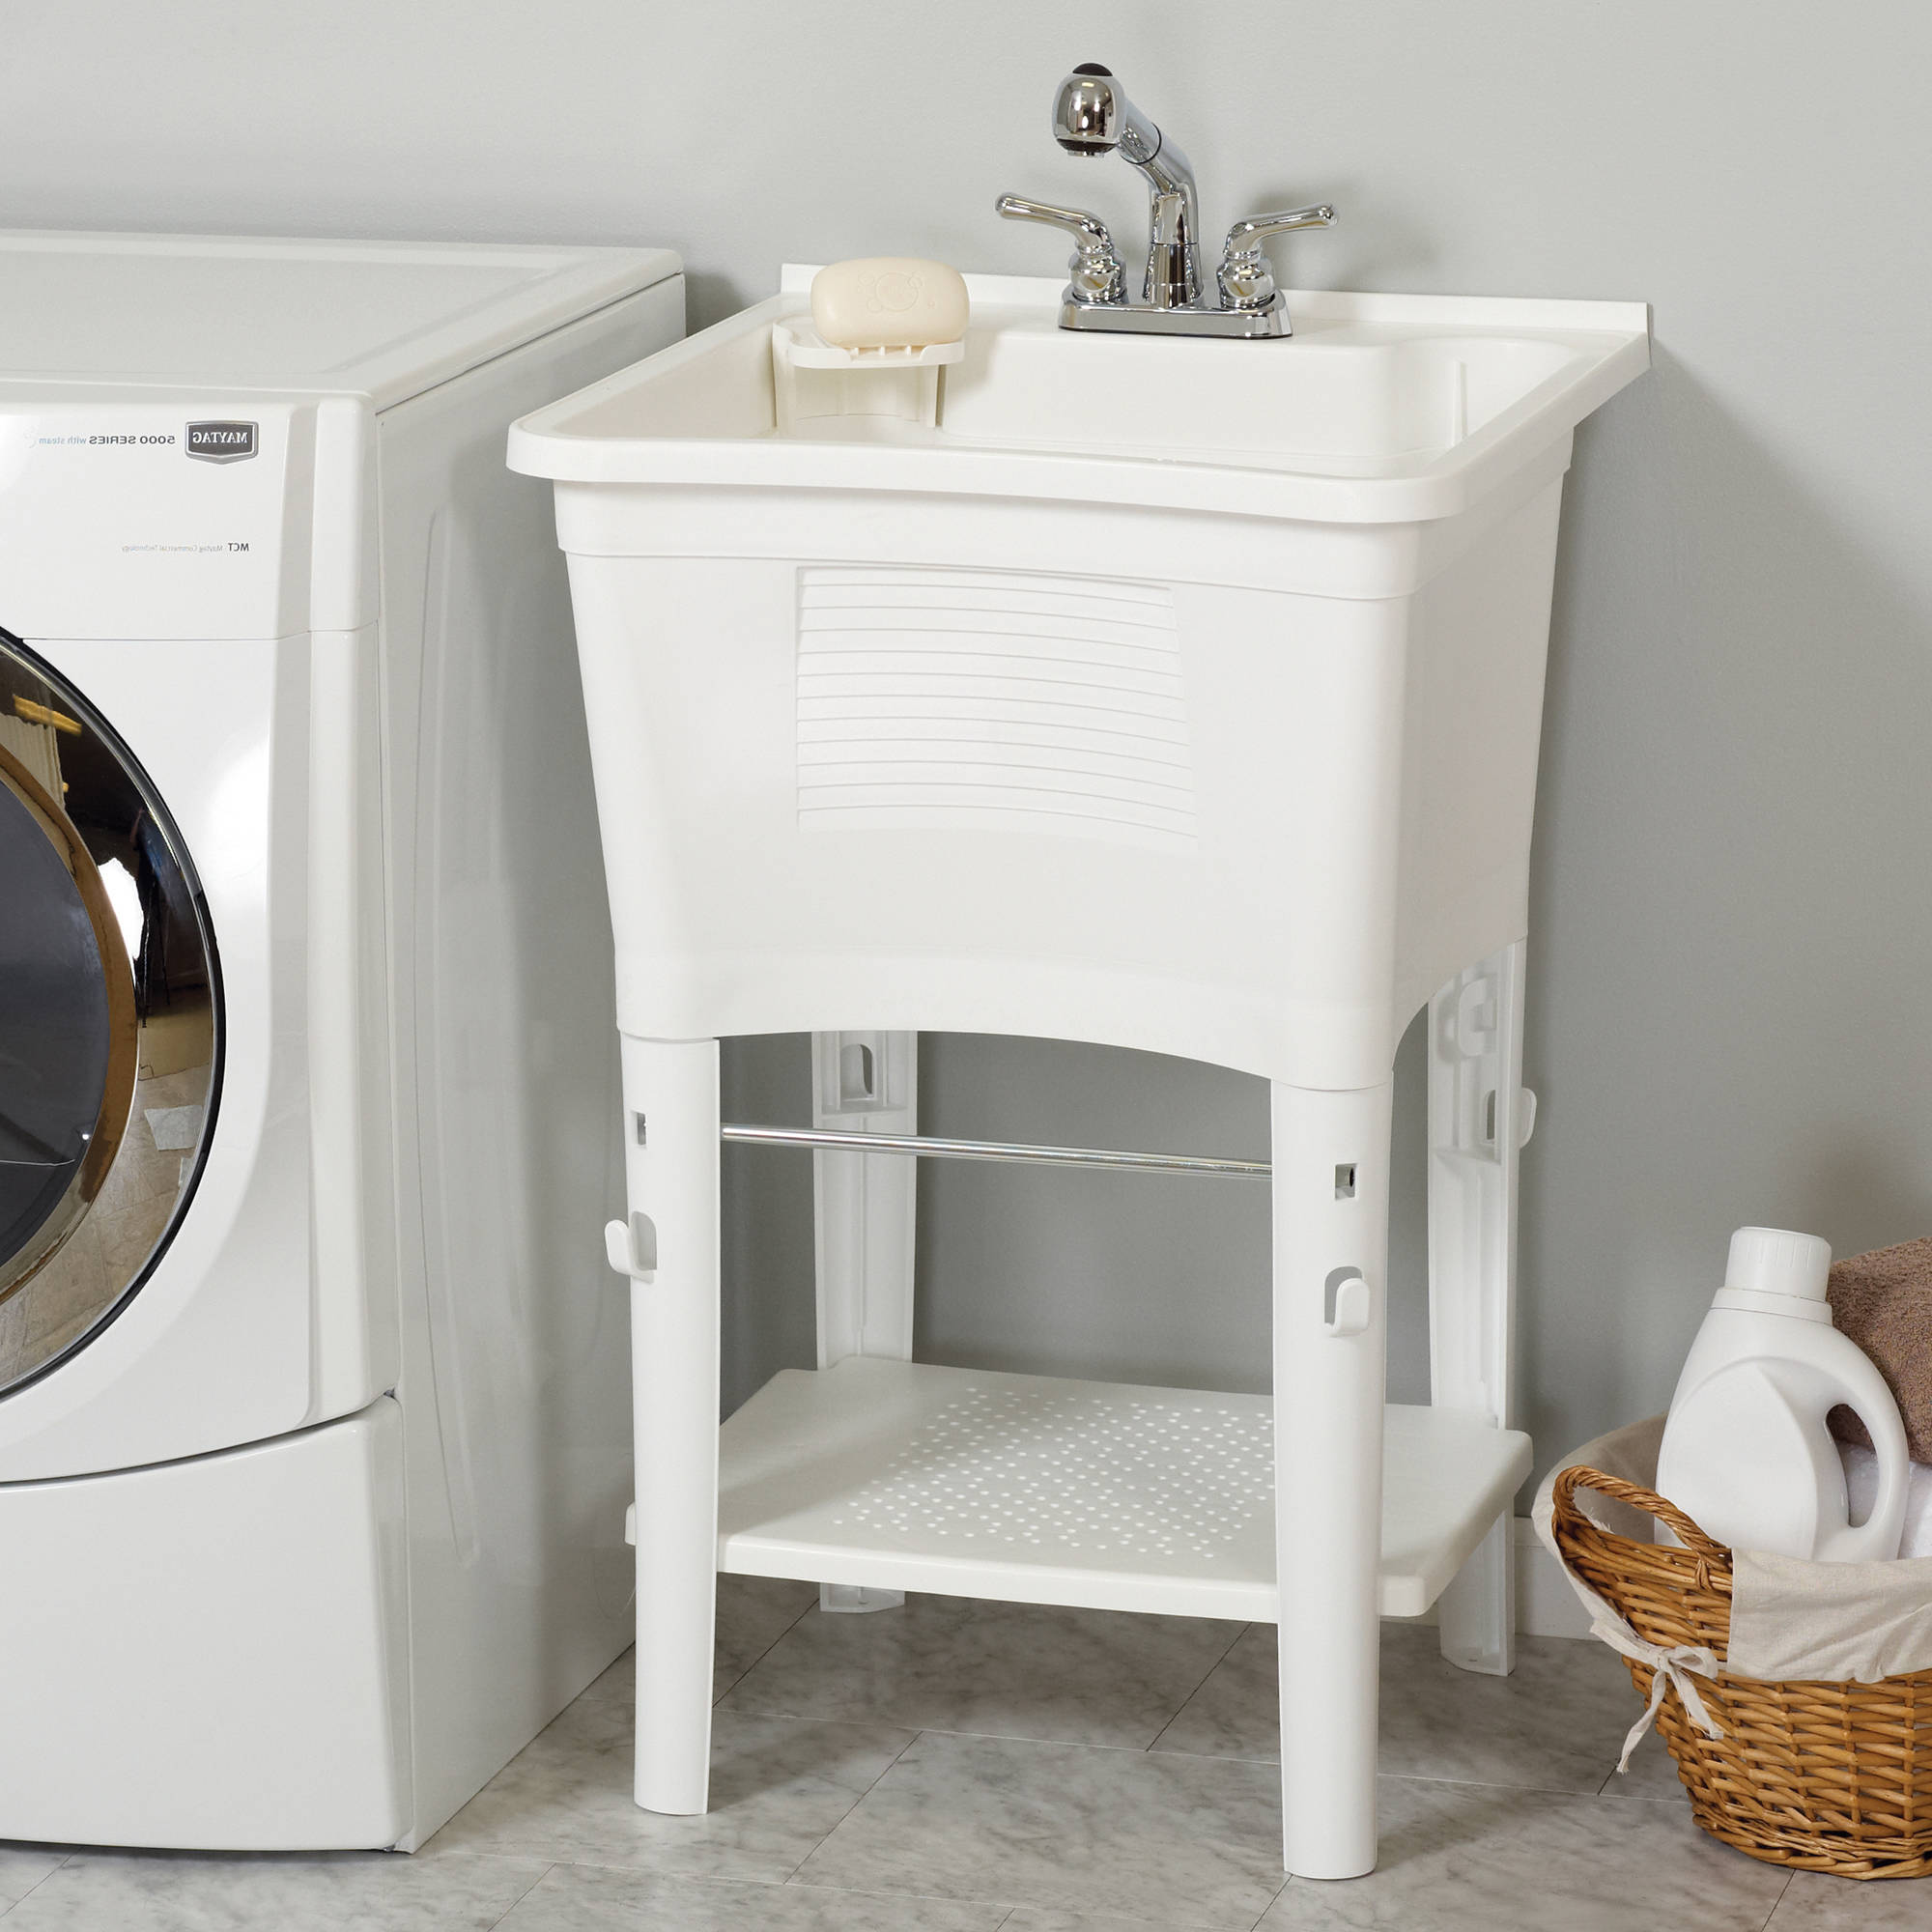 ErgoTub Full Featured Freestanding Utility Laundry Tub with Faucet Kit, White